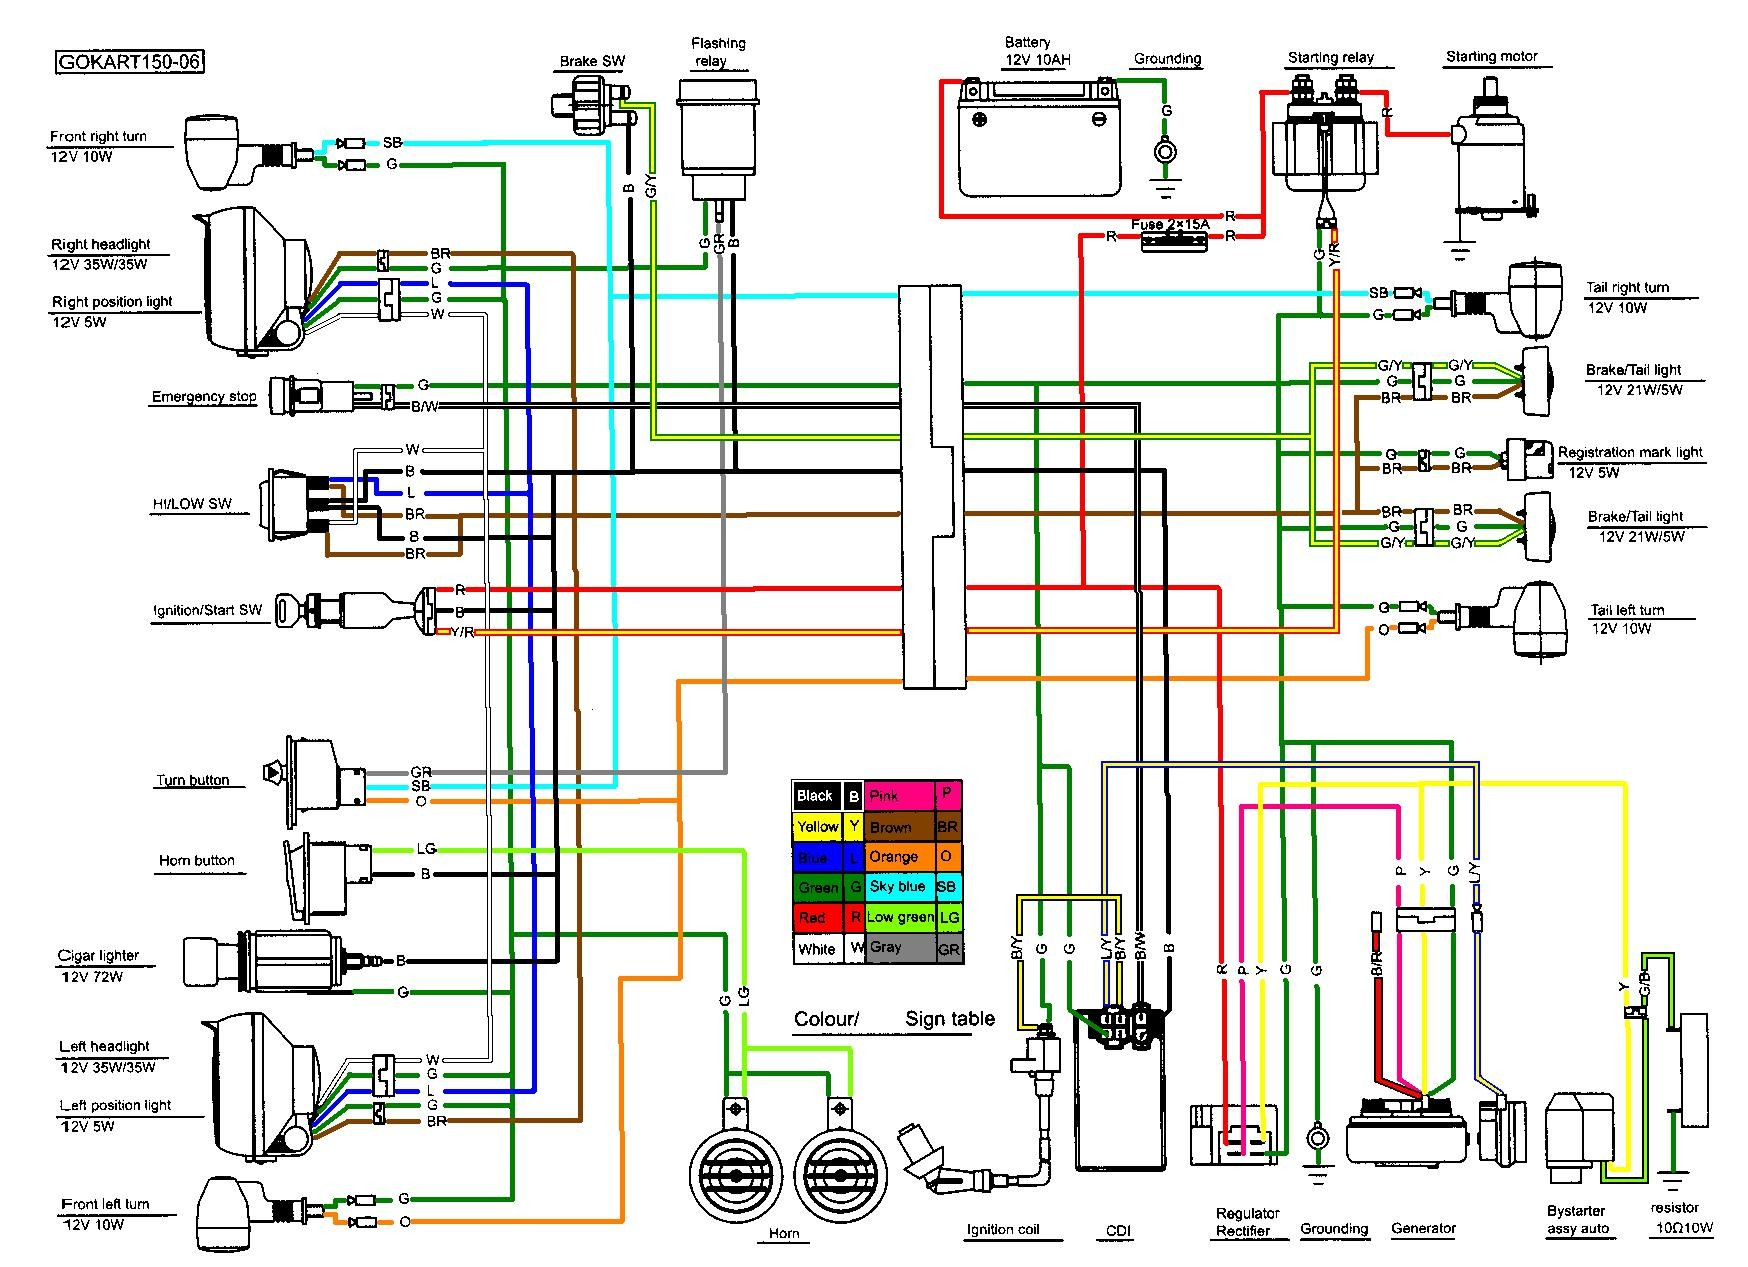 DIAGRAM] Zhejiang 110cc Atv Wiring Diagram FULL Version HD Quality Wiring  Diagram - 1HOAWIRING1.LALIBRAIRIEDELOUVIERS.FR